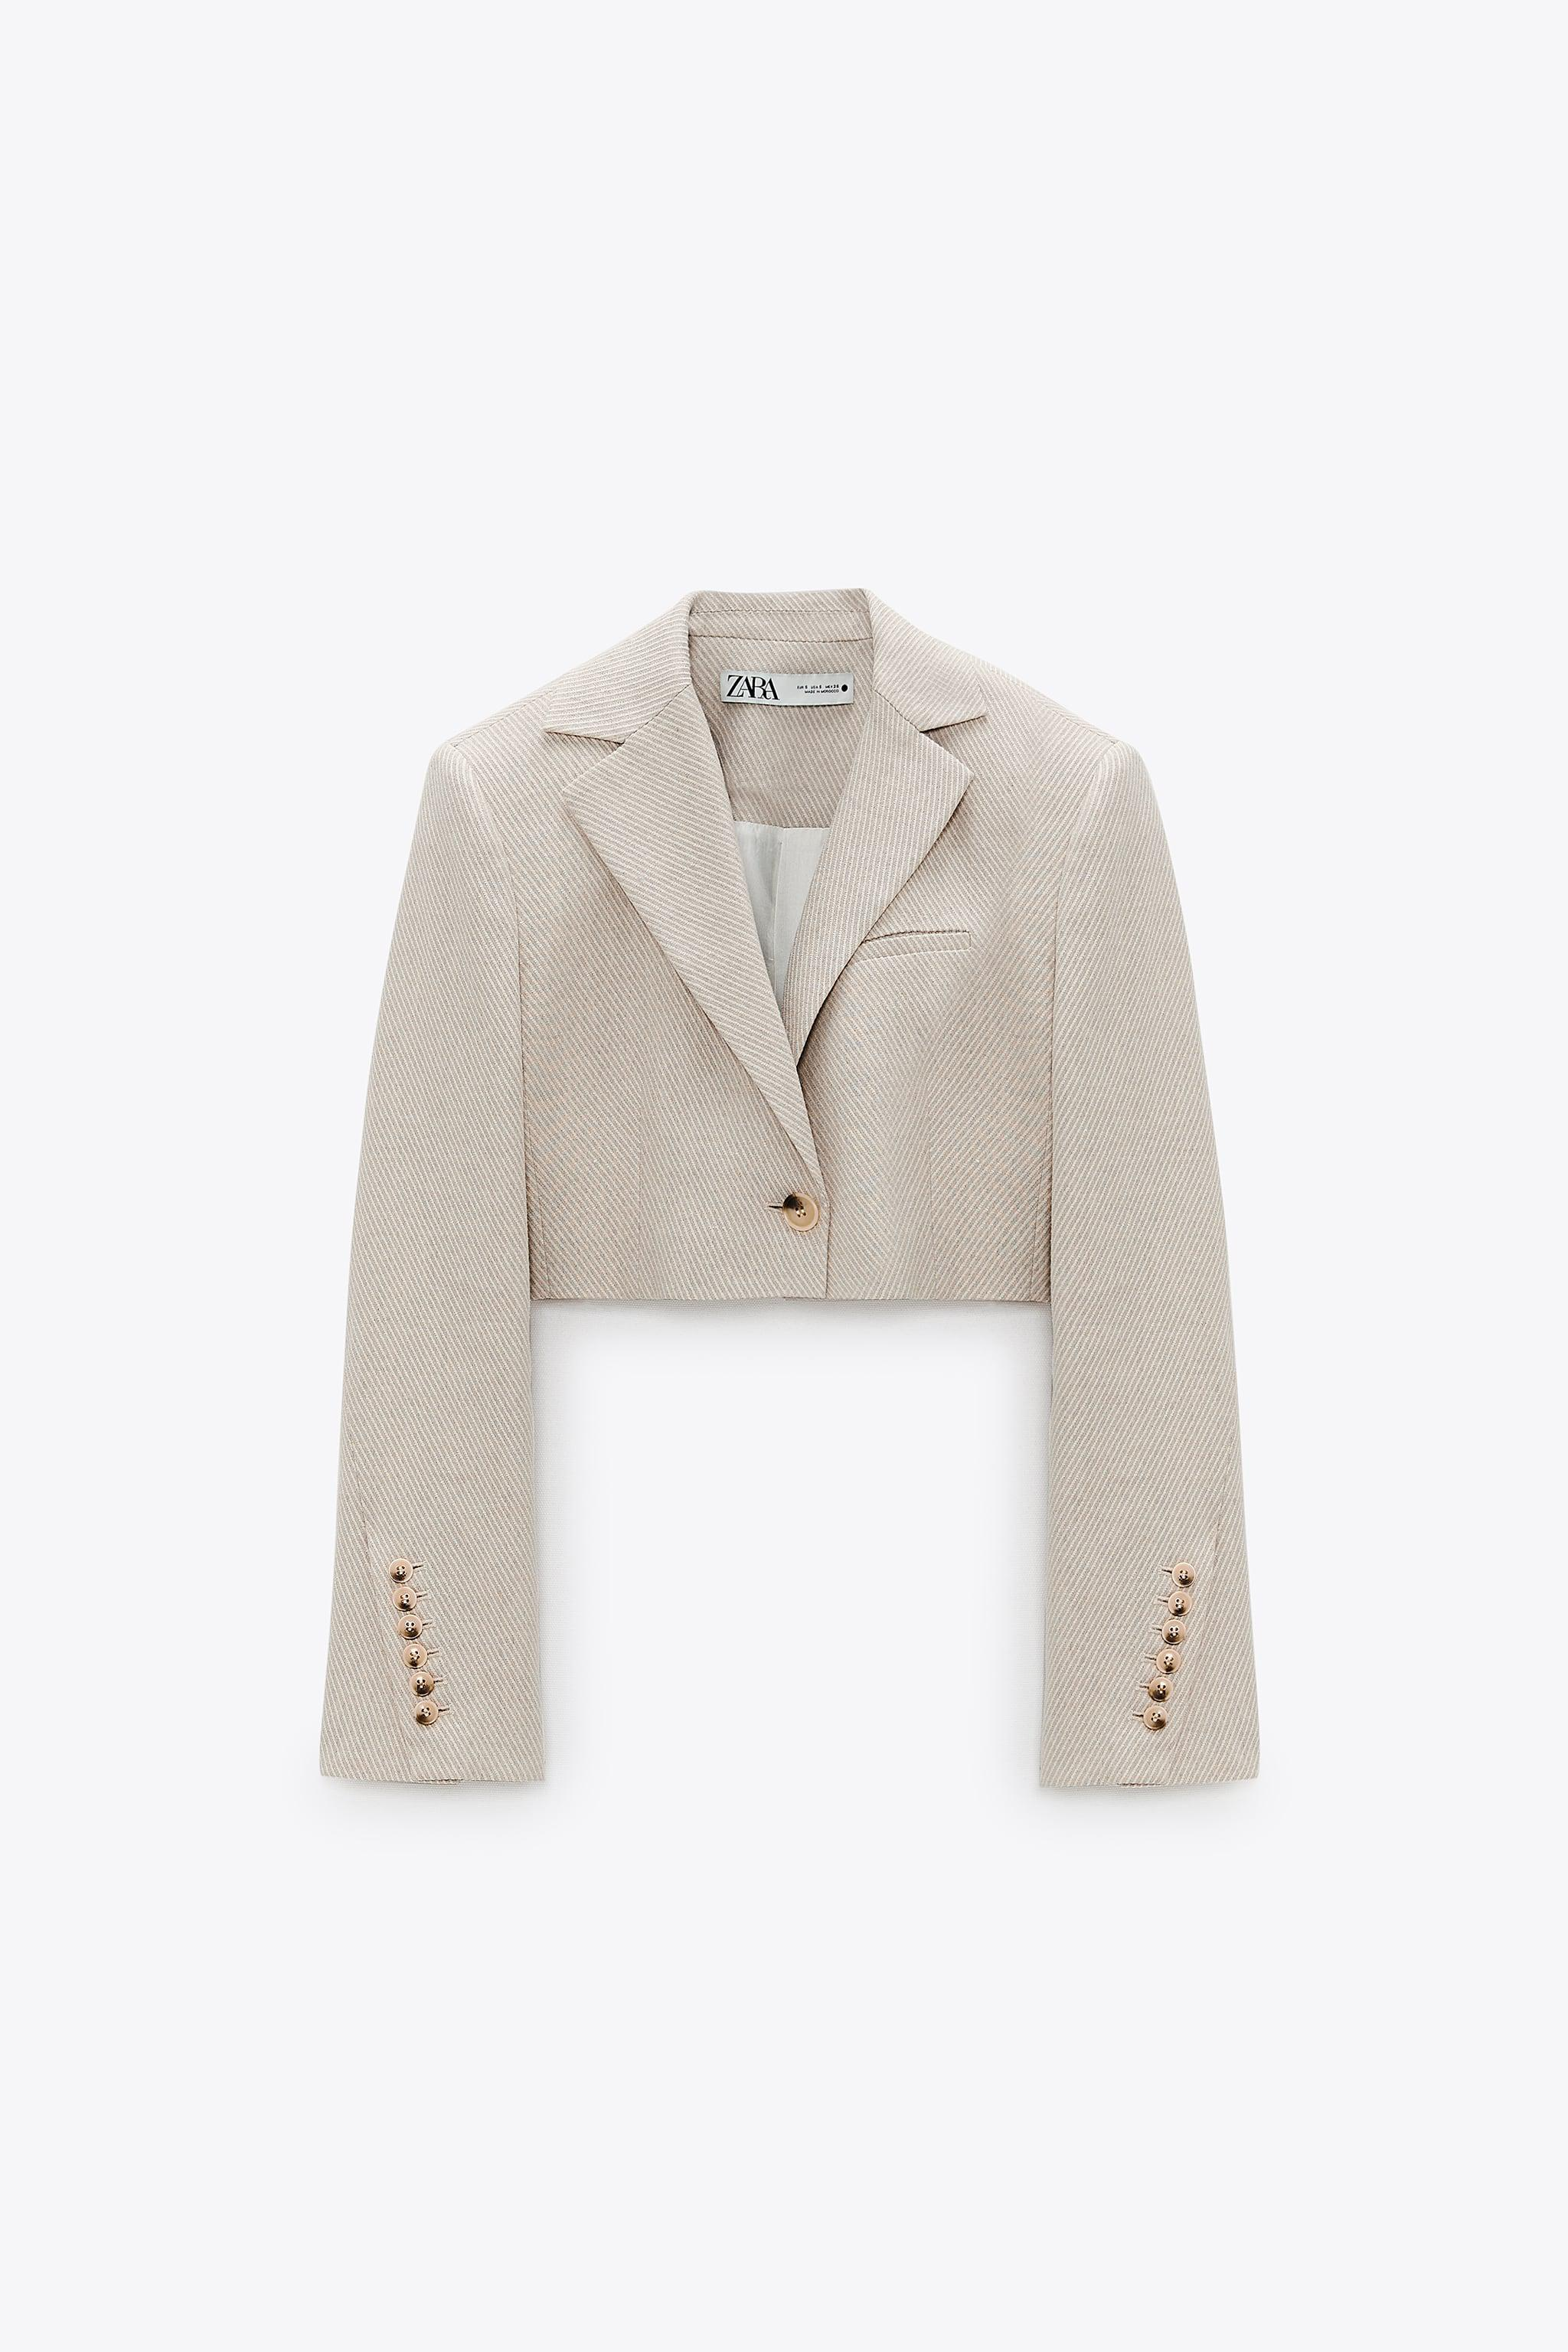 LIMITED EDITION CROPPED BLAZER 4